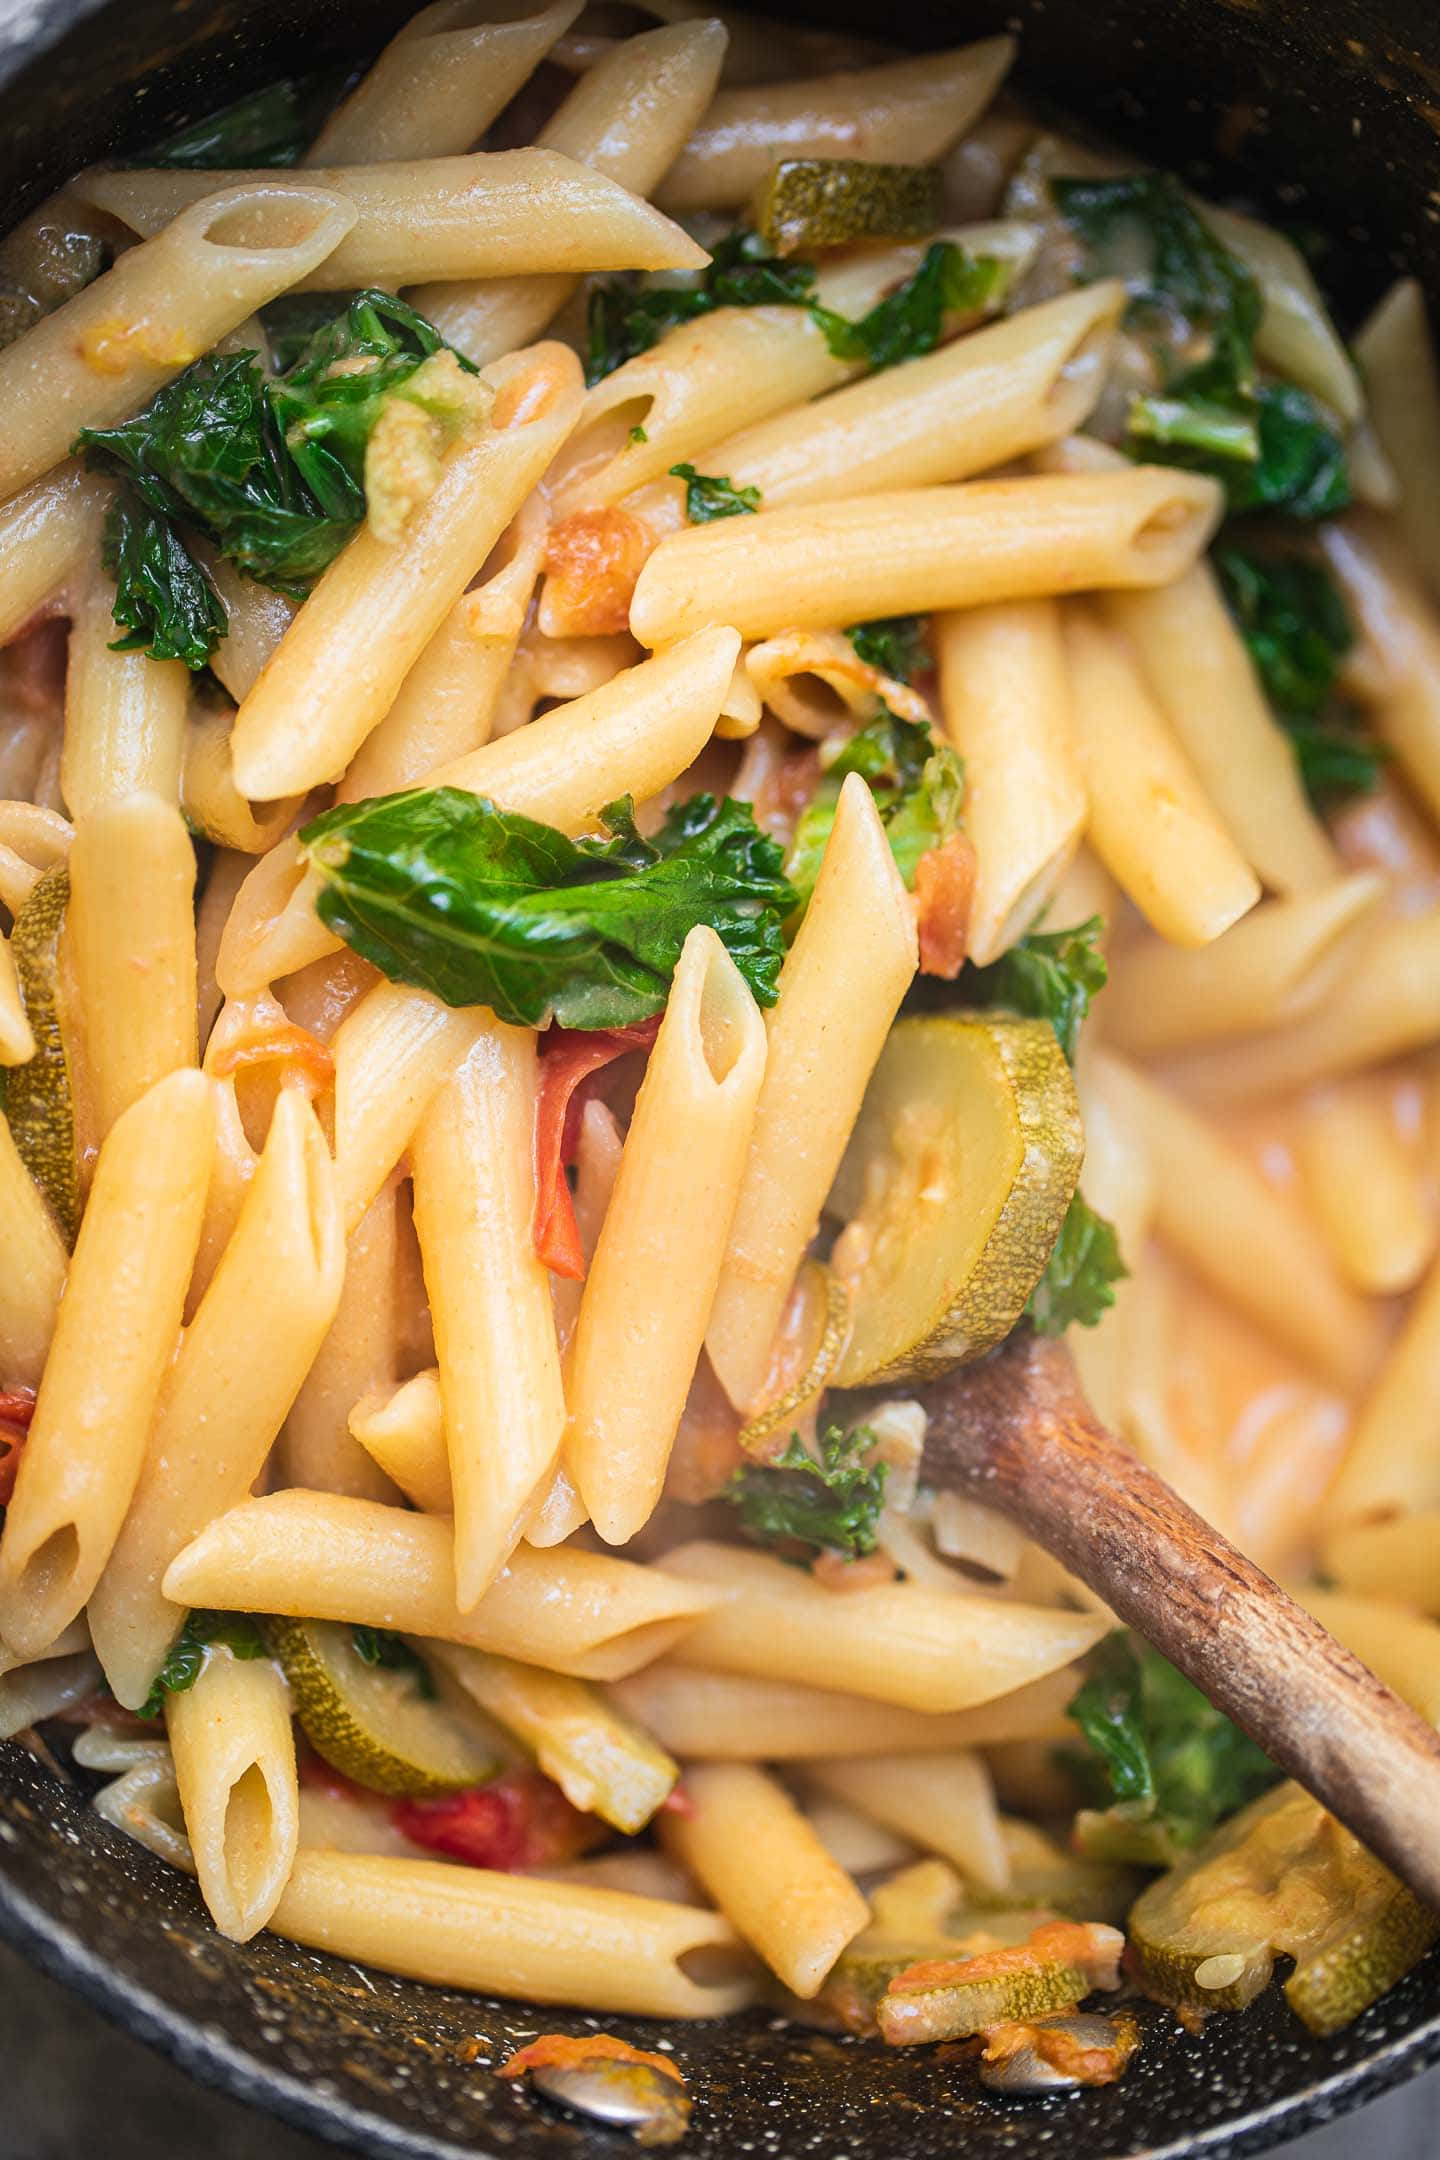 Vegan pasta dish with vegetables in a saucepan